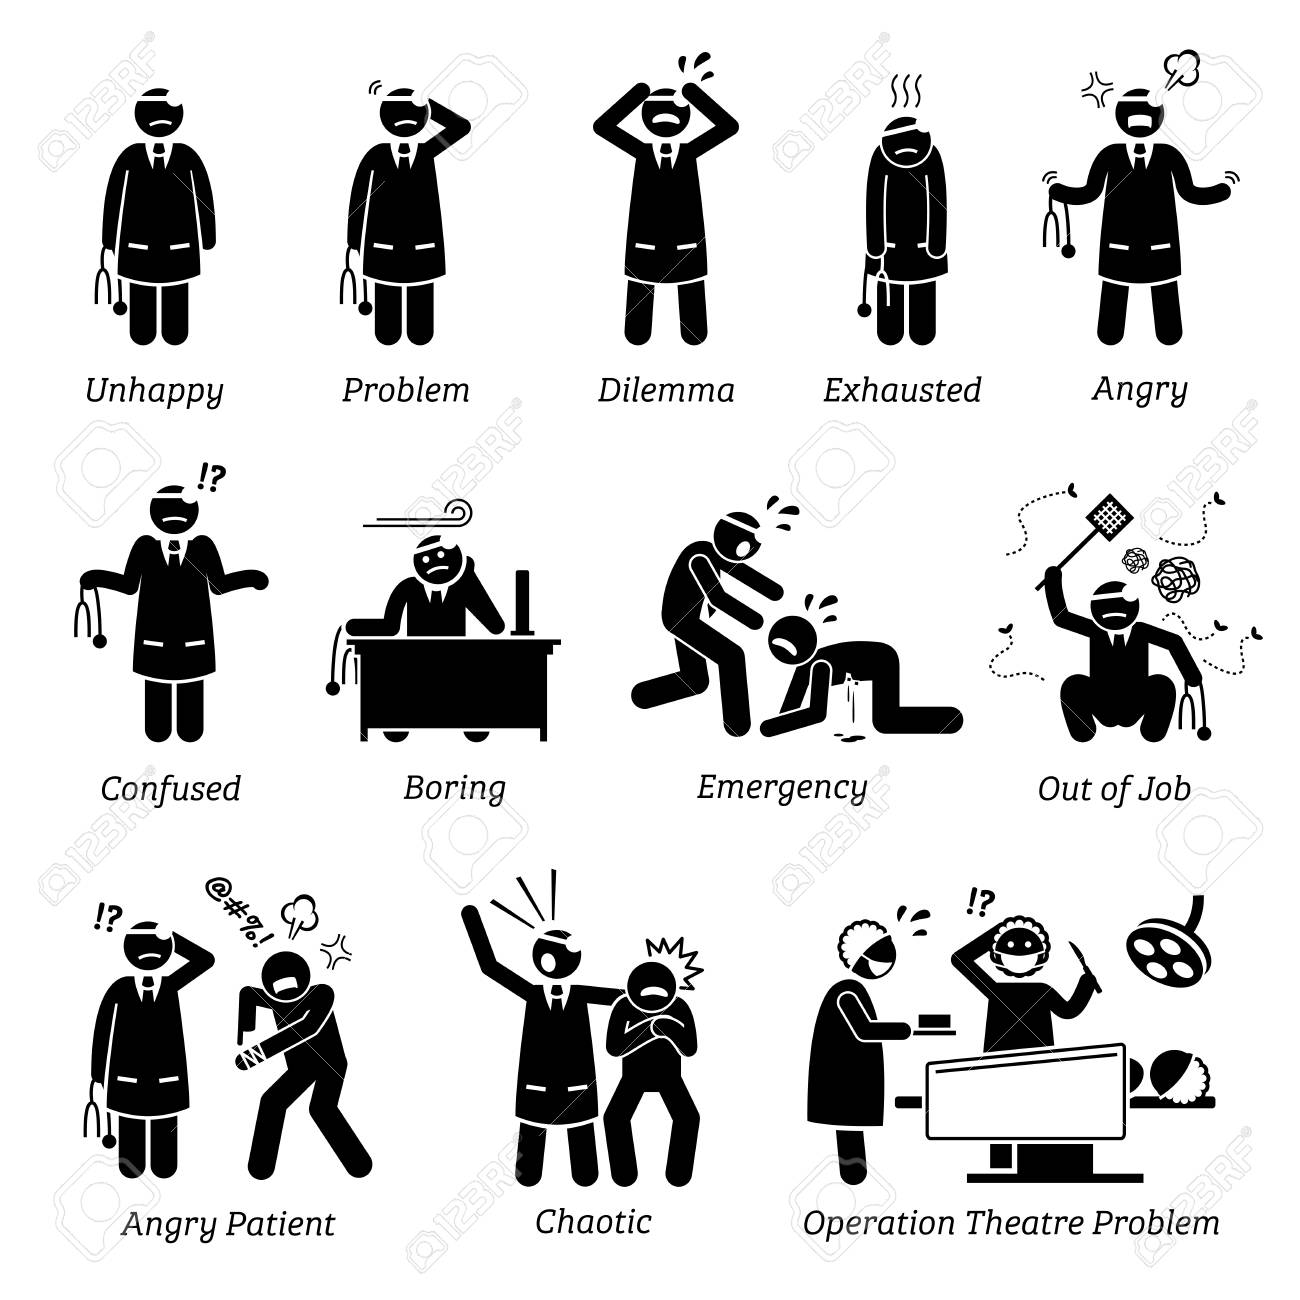 Busy and Unhappy Doctor. Stick figure pictogram depicts a doctor that is feeling unhappy, dilemma, exhausted, angry, confused, and boring. Doctor is having a lot of problems in clinic and hospital. - 92871786